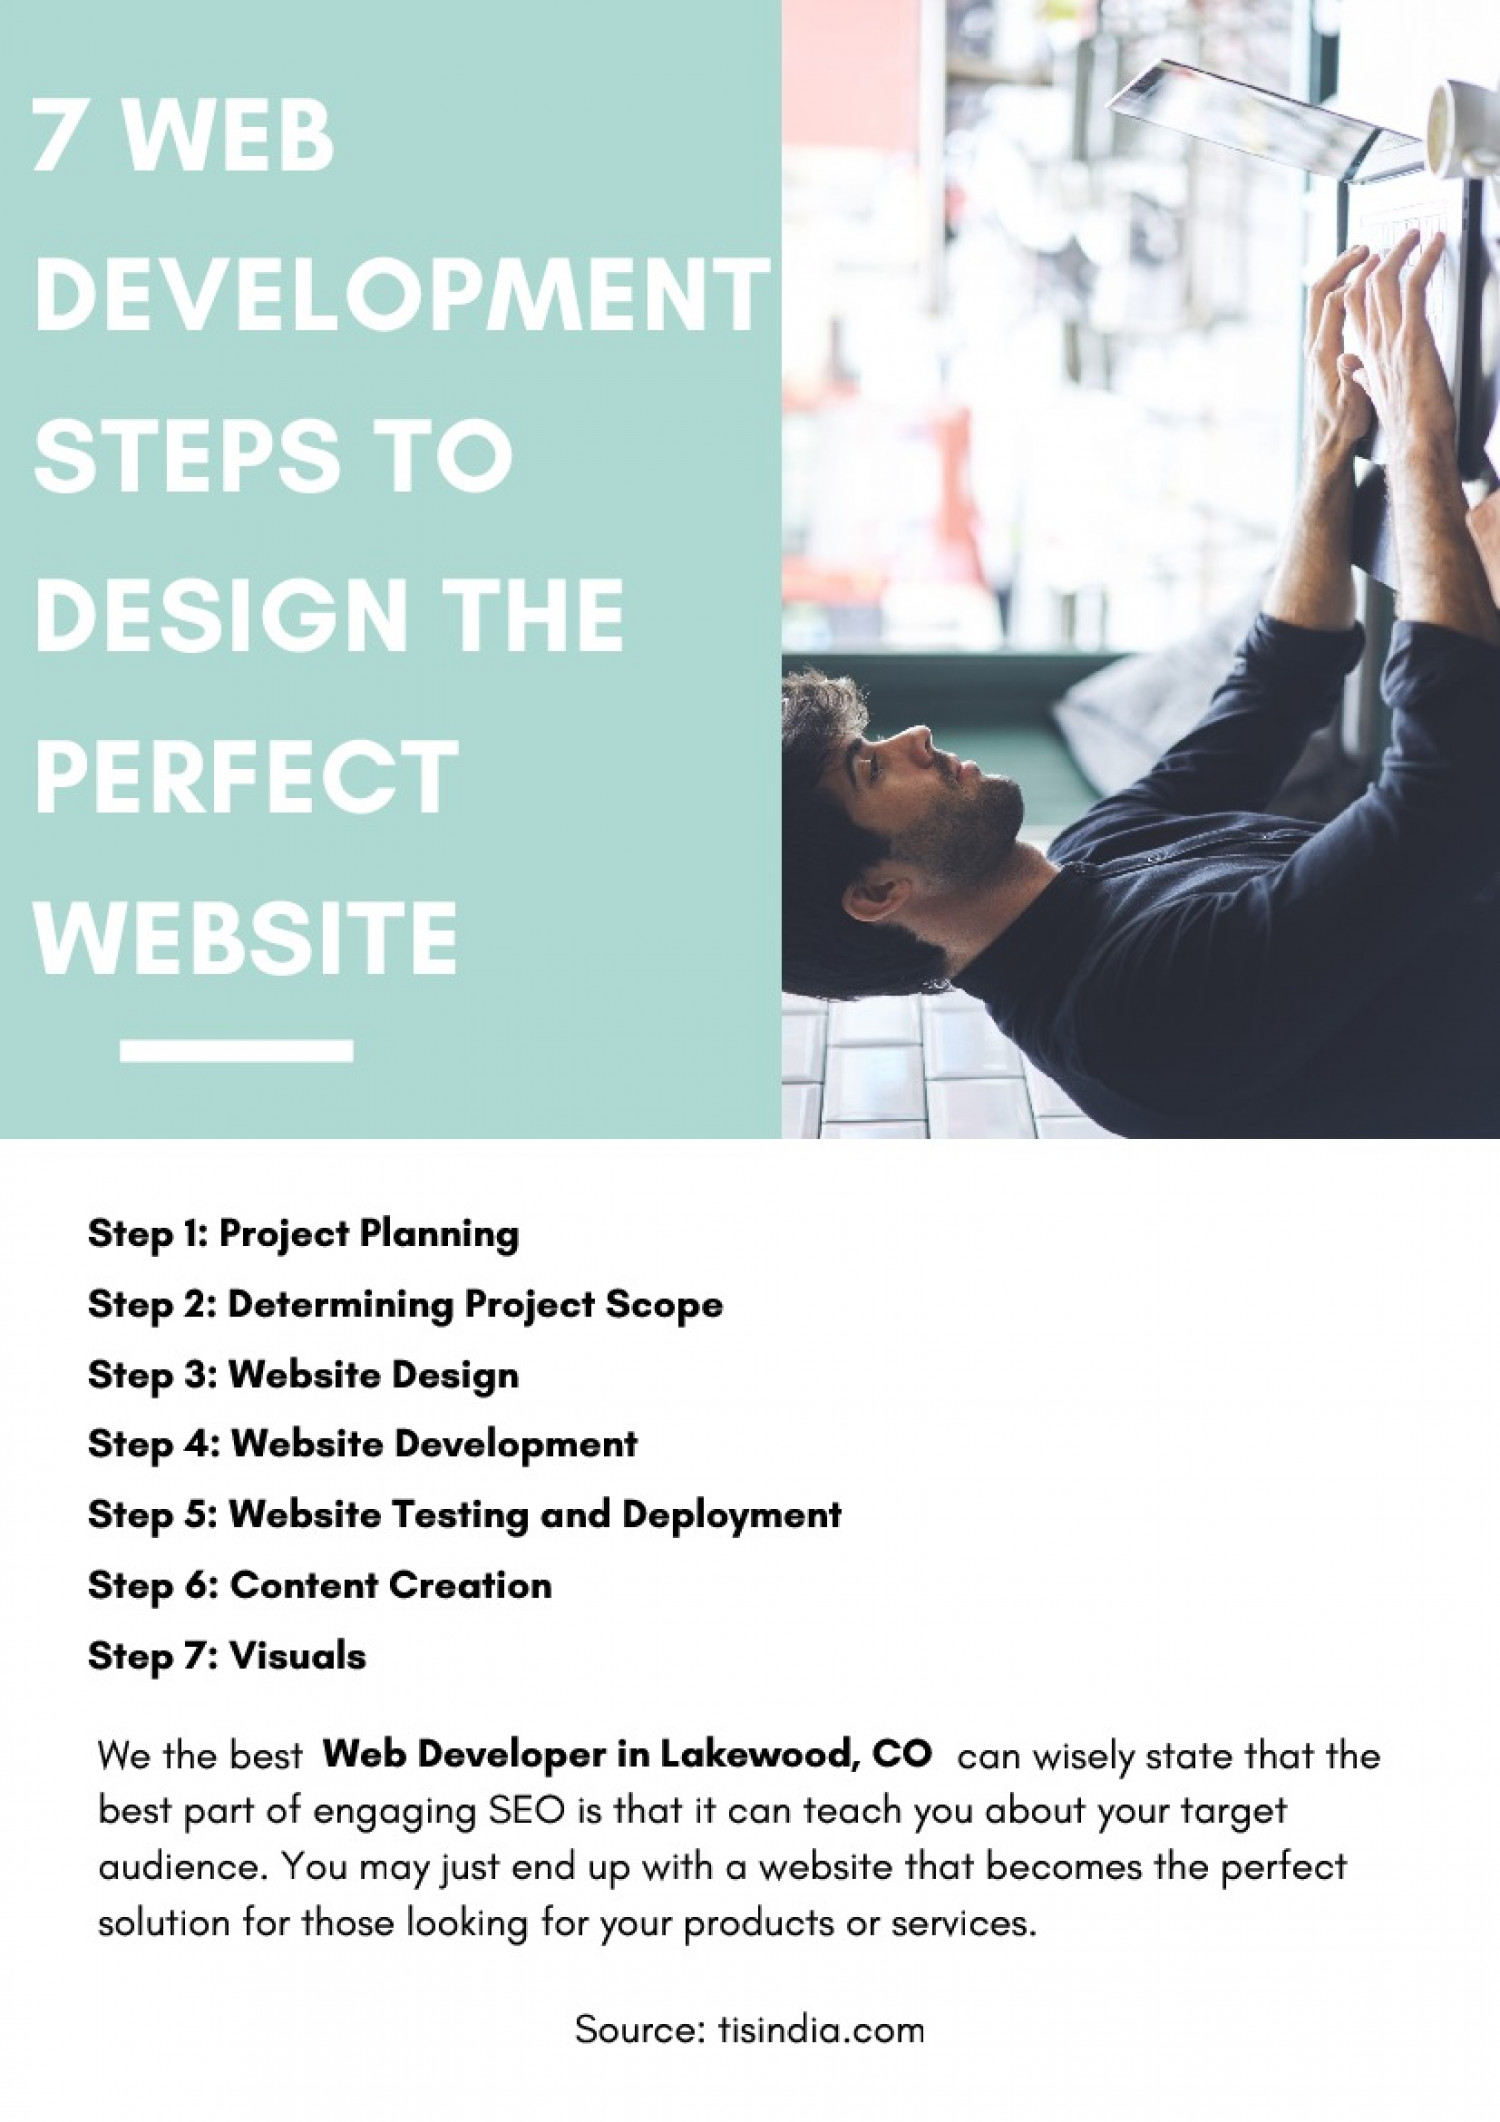 7 Web Development Steps to Design the Perfect Website Infographic